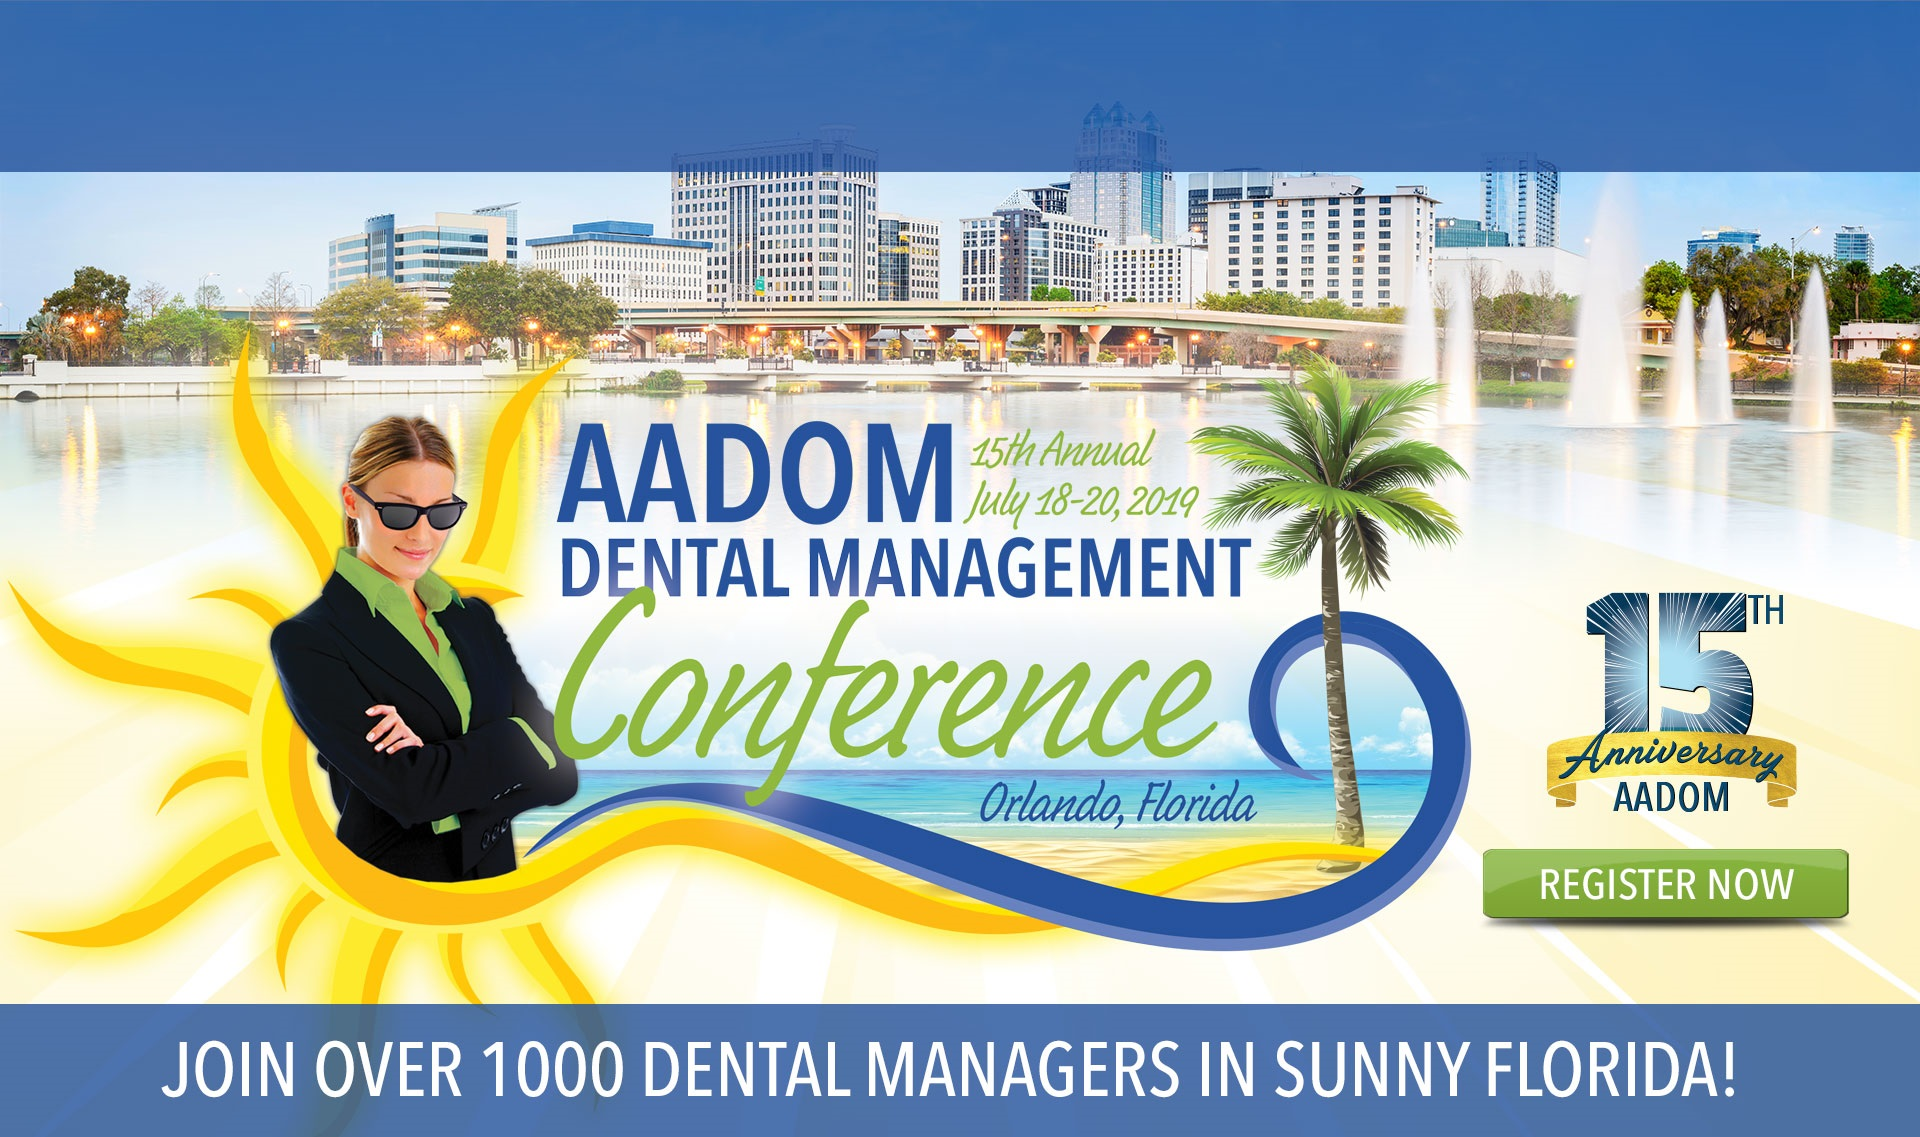 AADOM 2018 Conference